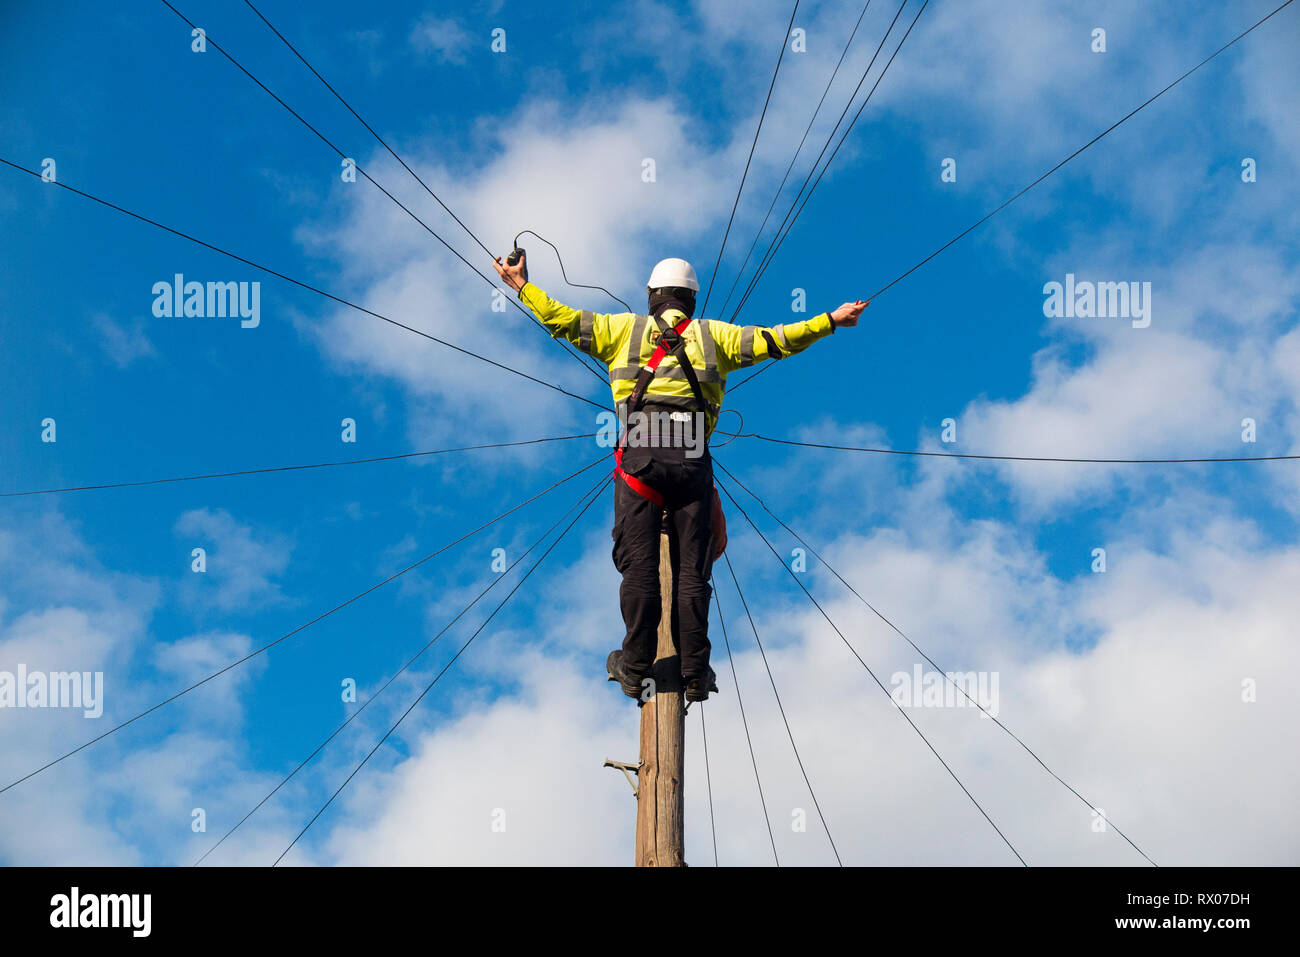 Telecom engineer working on domestic phone line / broadband internet copper wire up a telephone / telegraph pole in a London Street / Road, & blue sky - Stock Image